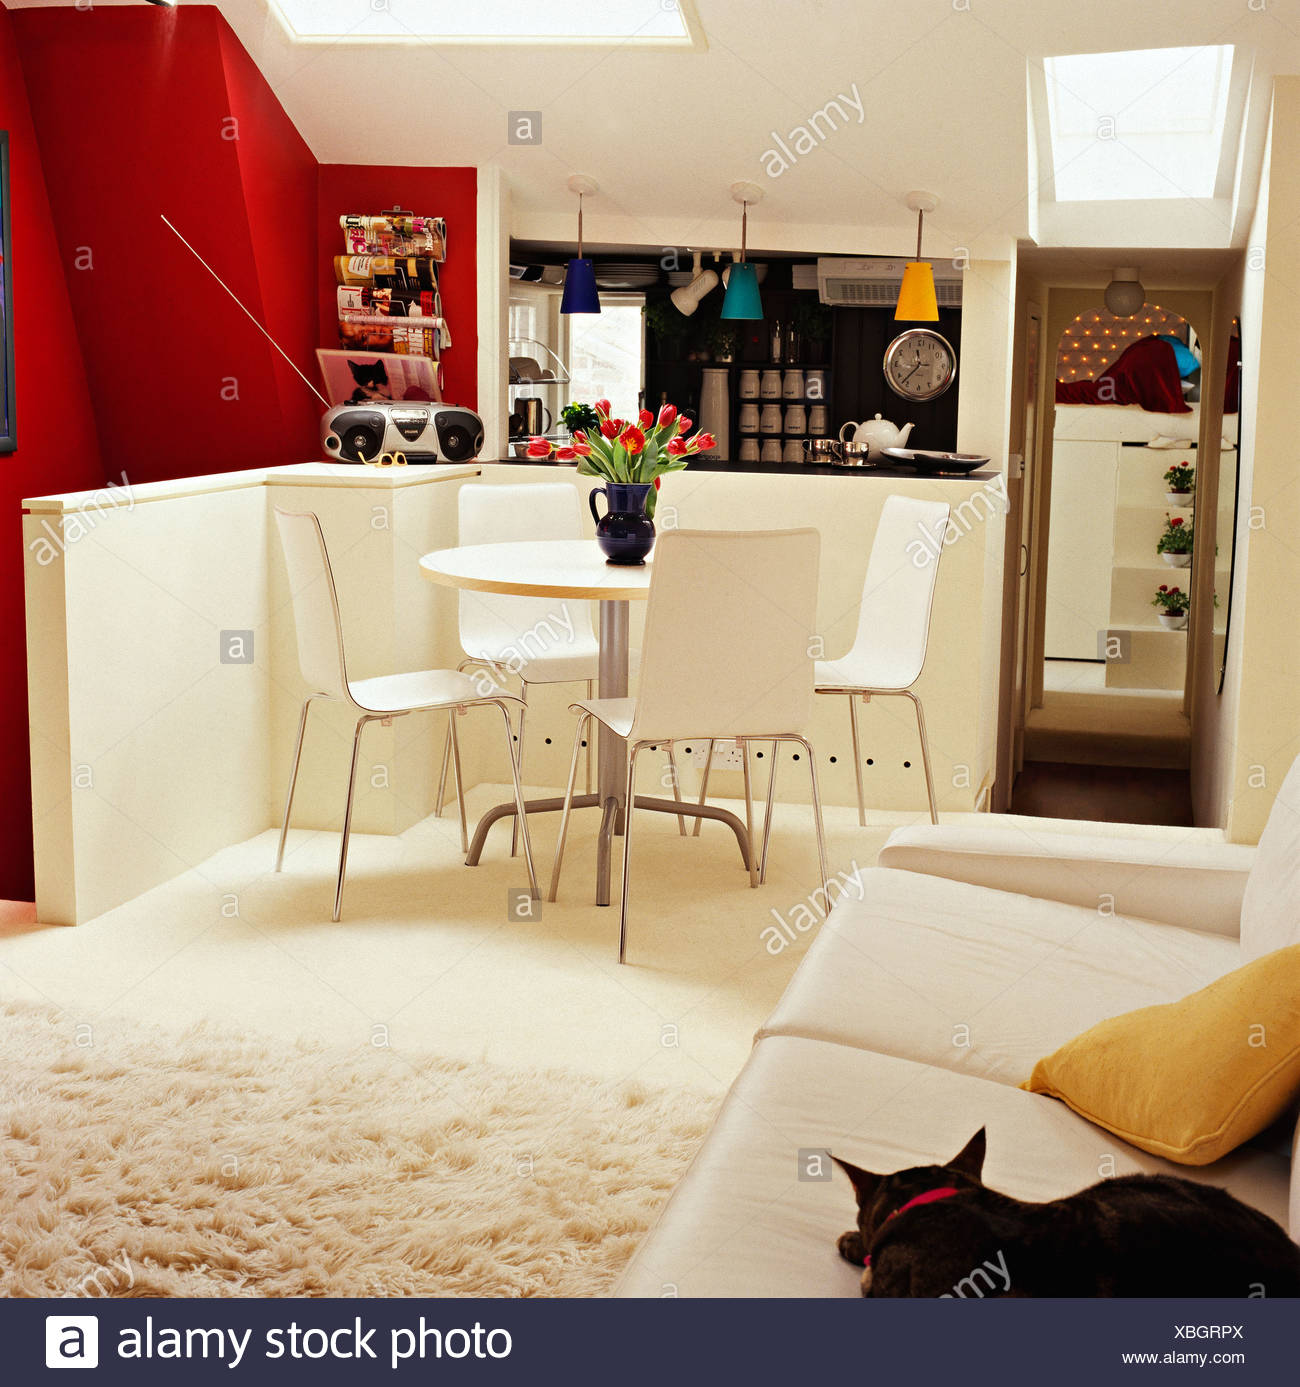 Cat Sitting On White Sofa In Dining Area Of Modern Loft Conversion  Apartment With Sheepskin Rug And White Table And Chairs